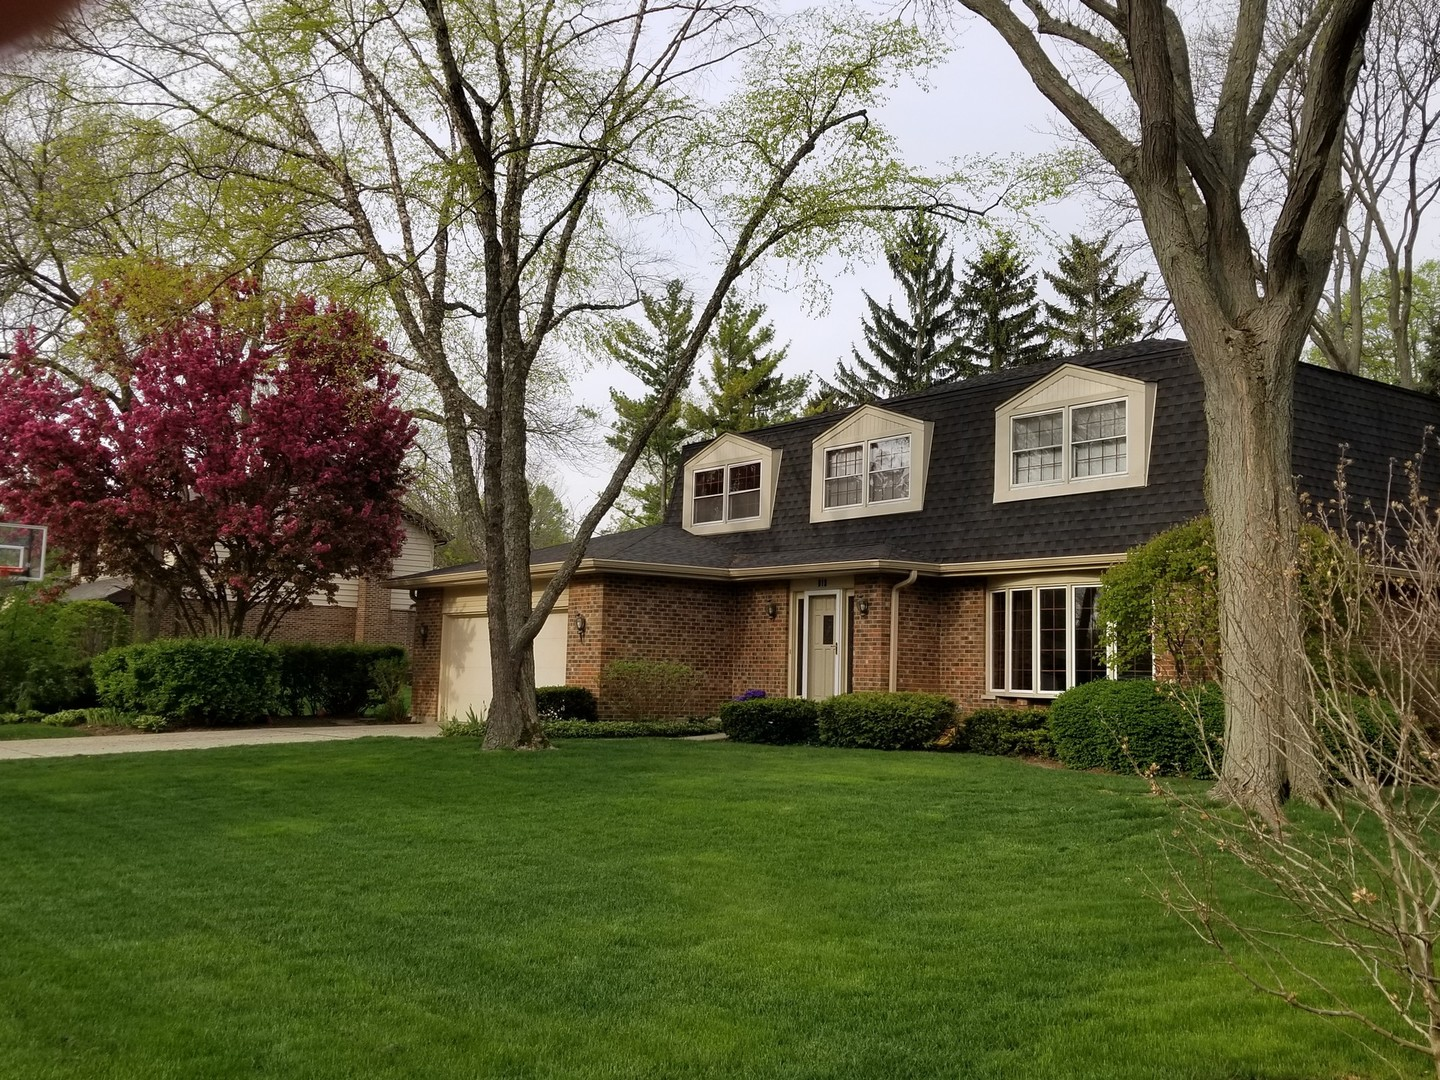 915 Jeremy Lane, Libertyville, Illinois 60048